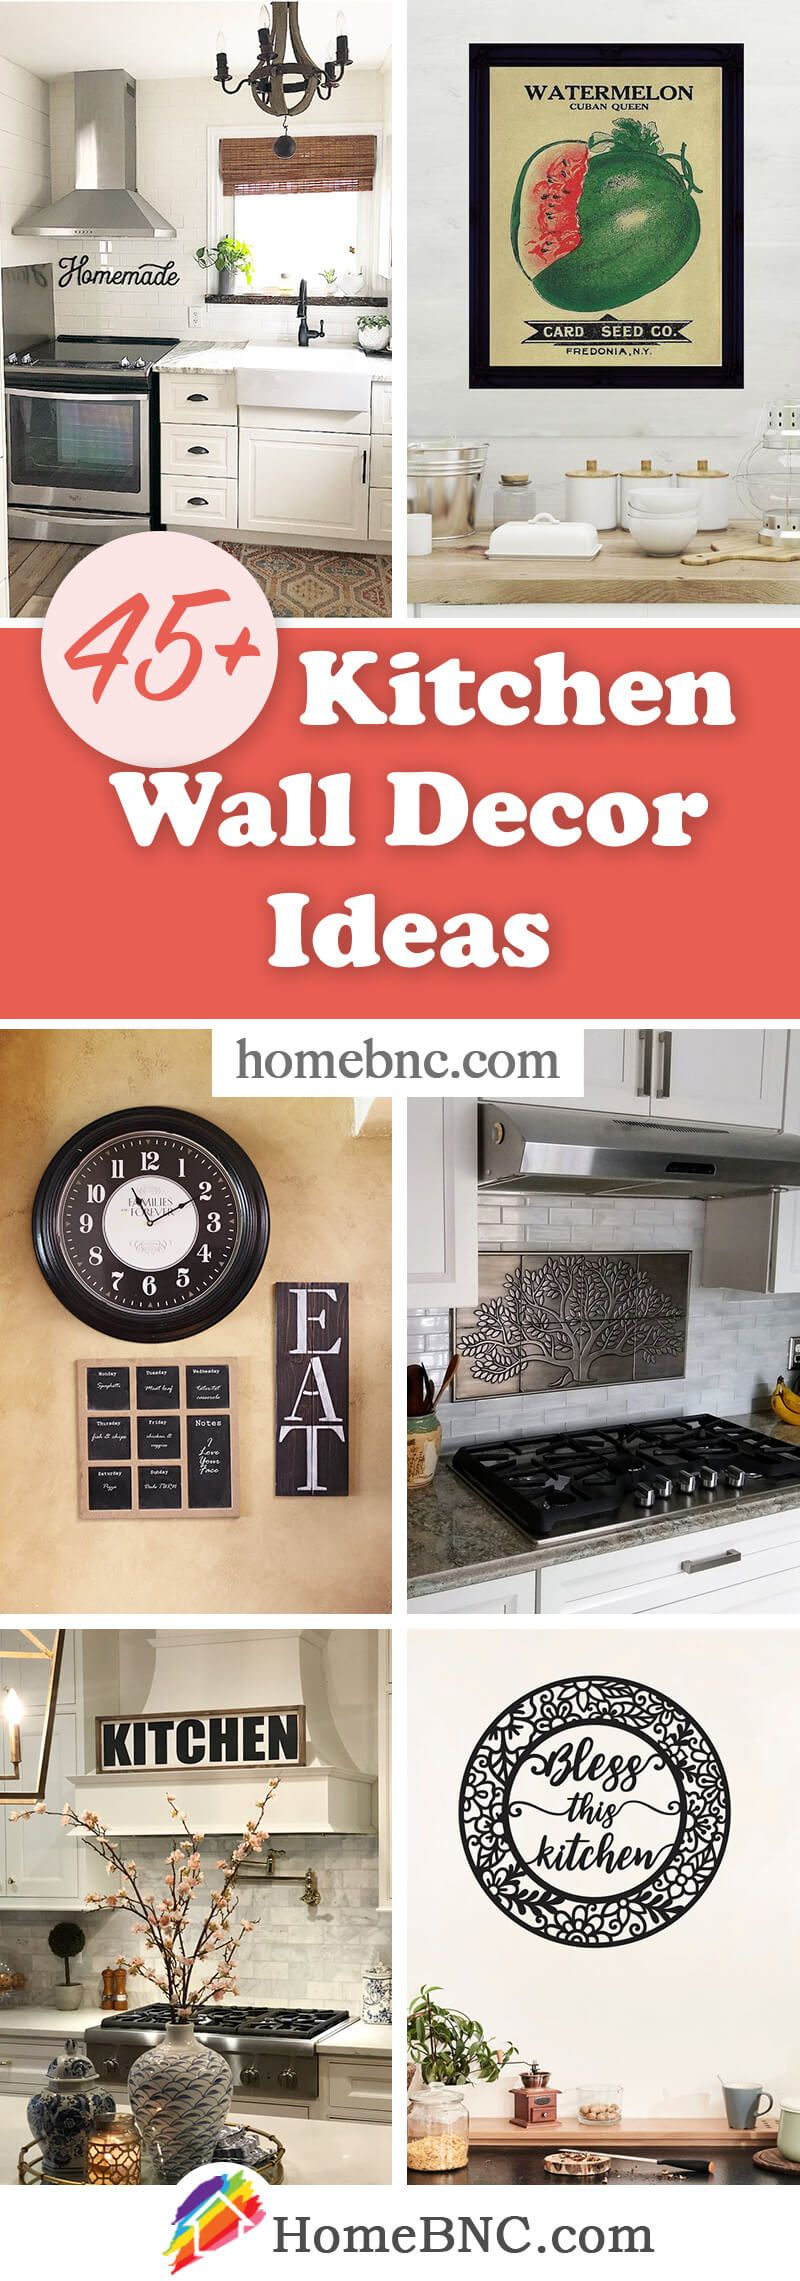 45 Best Kitchen Wall Decor Ideas And Designs For 2021 In 2021 Kitchen Wall Decor Kitchen Wall Decor